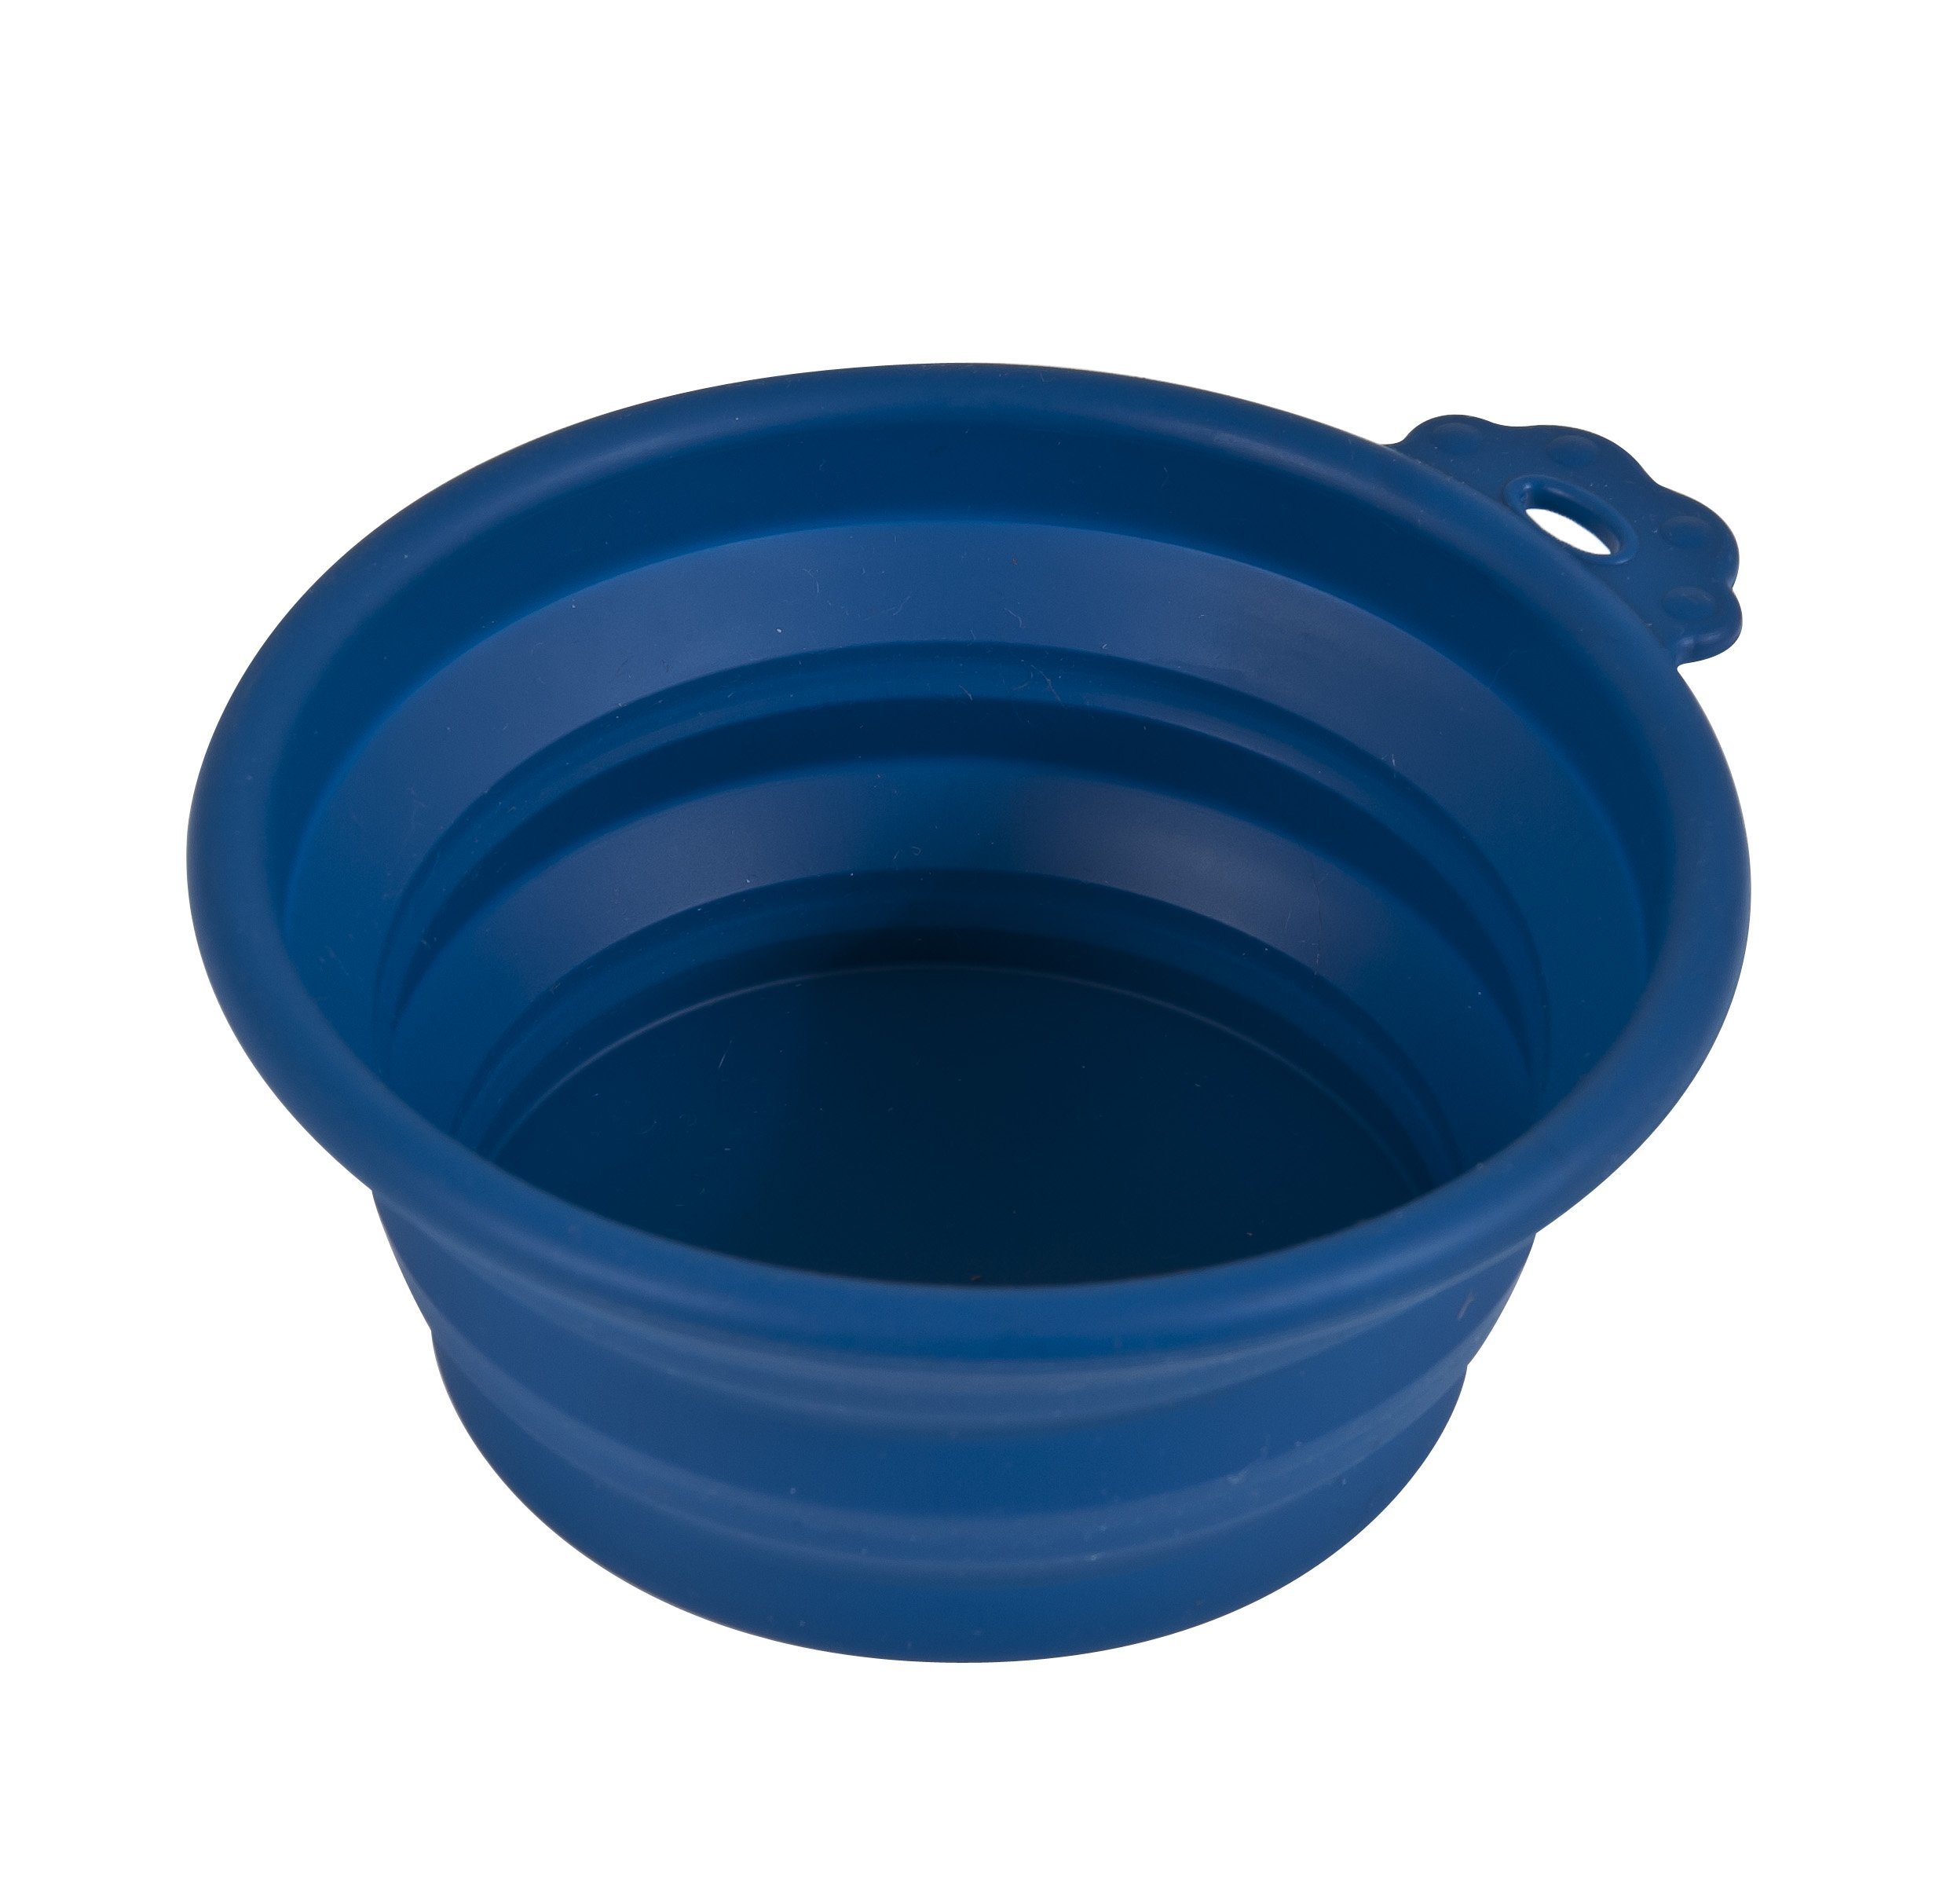 Petmate 23369 Silicone Round 3-Cup Travel Bowl for Pets, Navy Blue